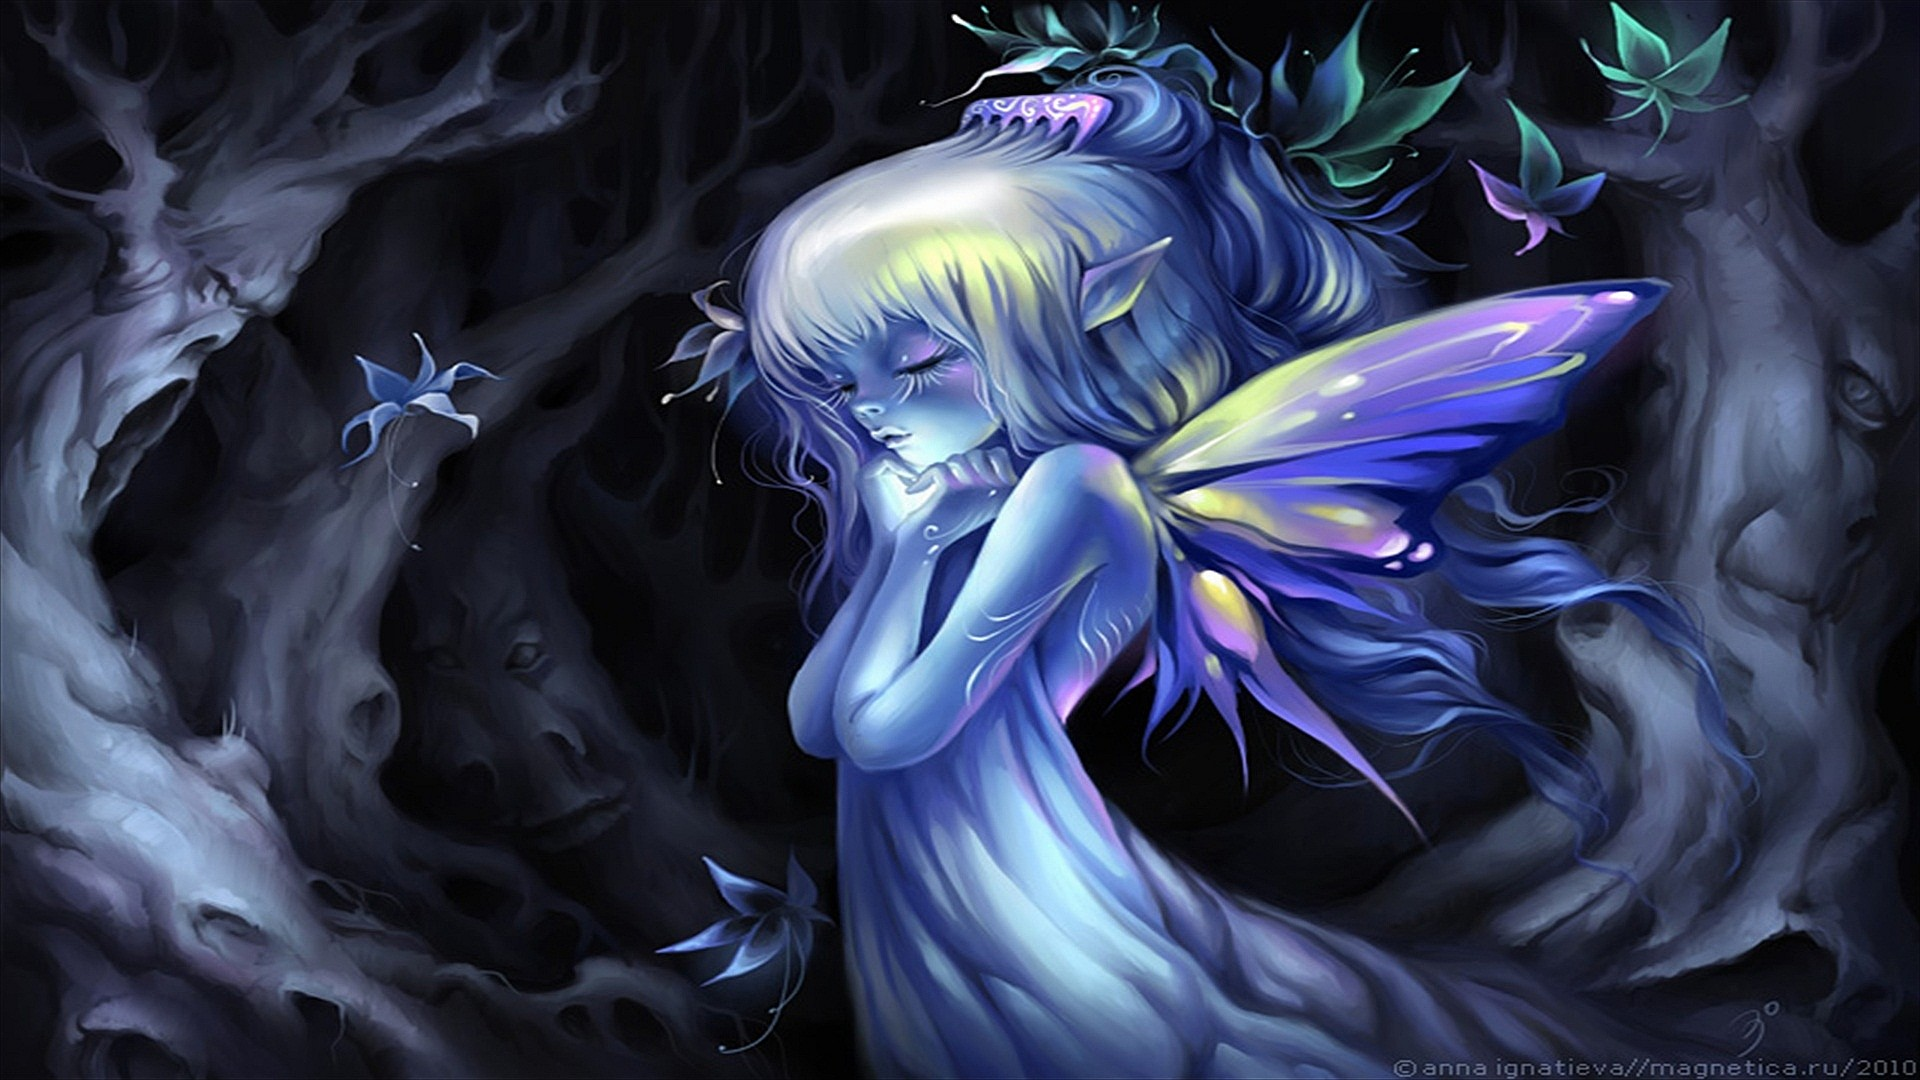 Gothic Fairy Screensavers | Fairy Computer Wallpapers, Desktop Backgrounds  | | ID:160408